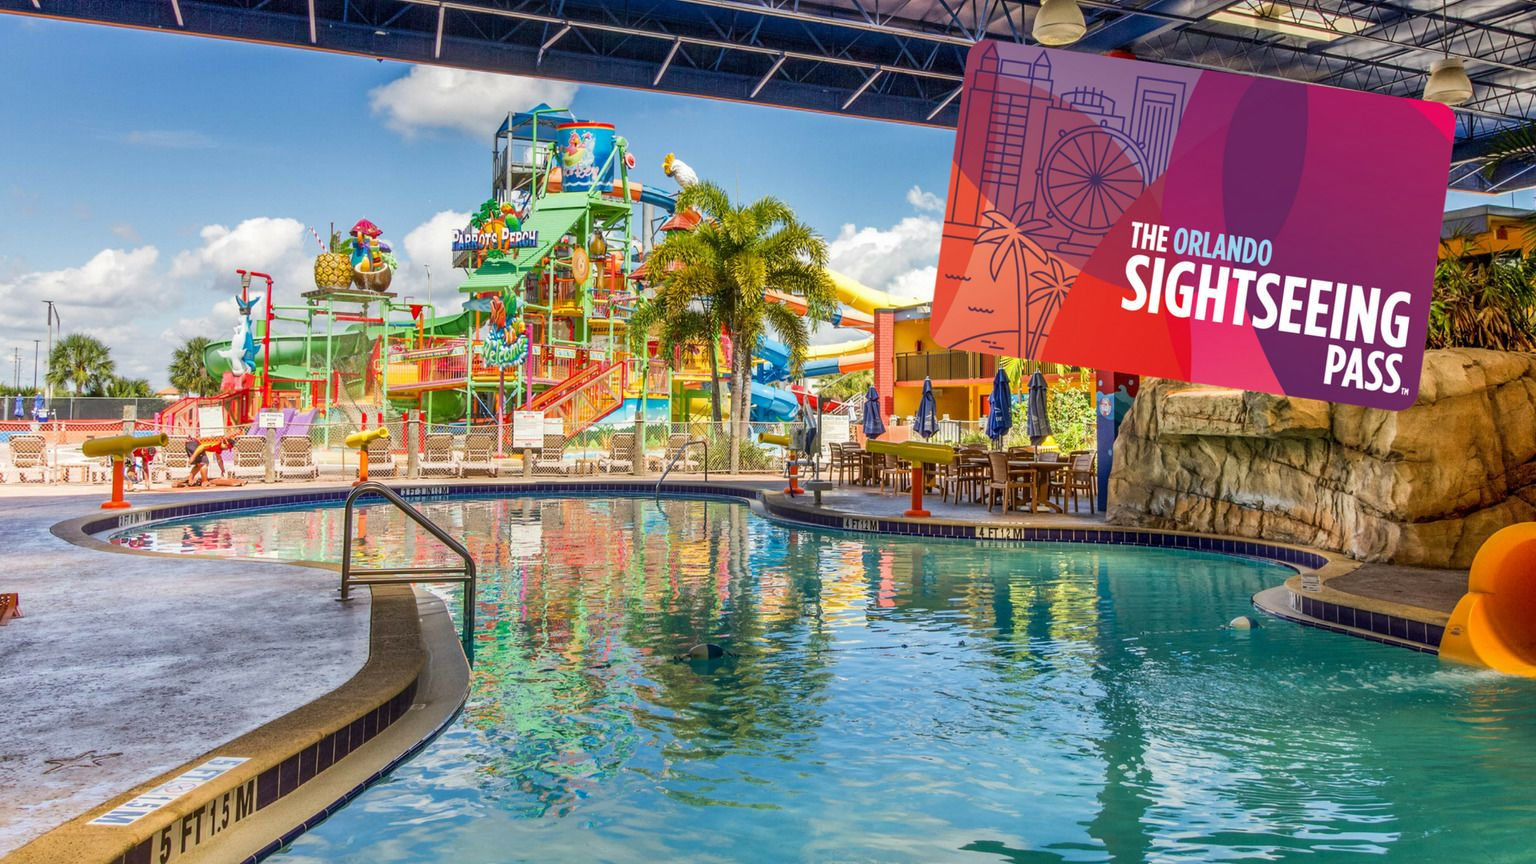 The Orlando Sightseeing Flex Pass - Attractions and Tours